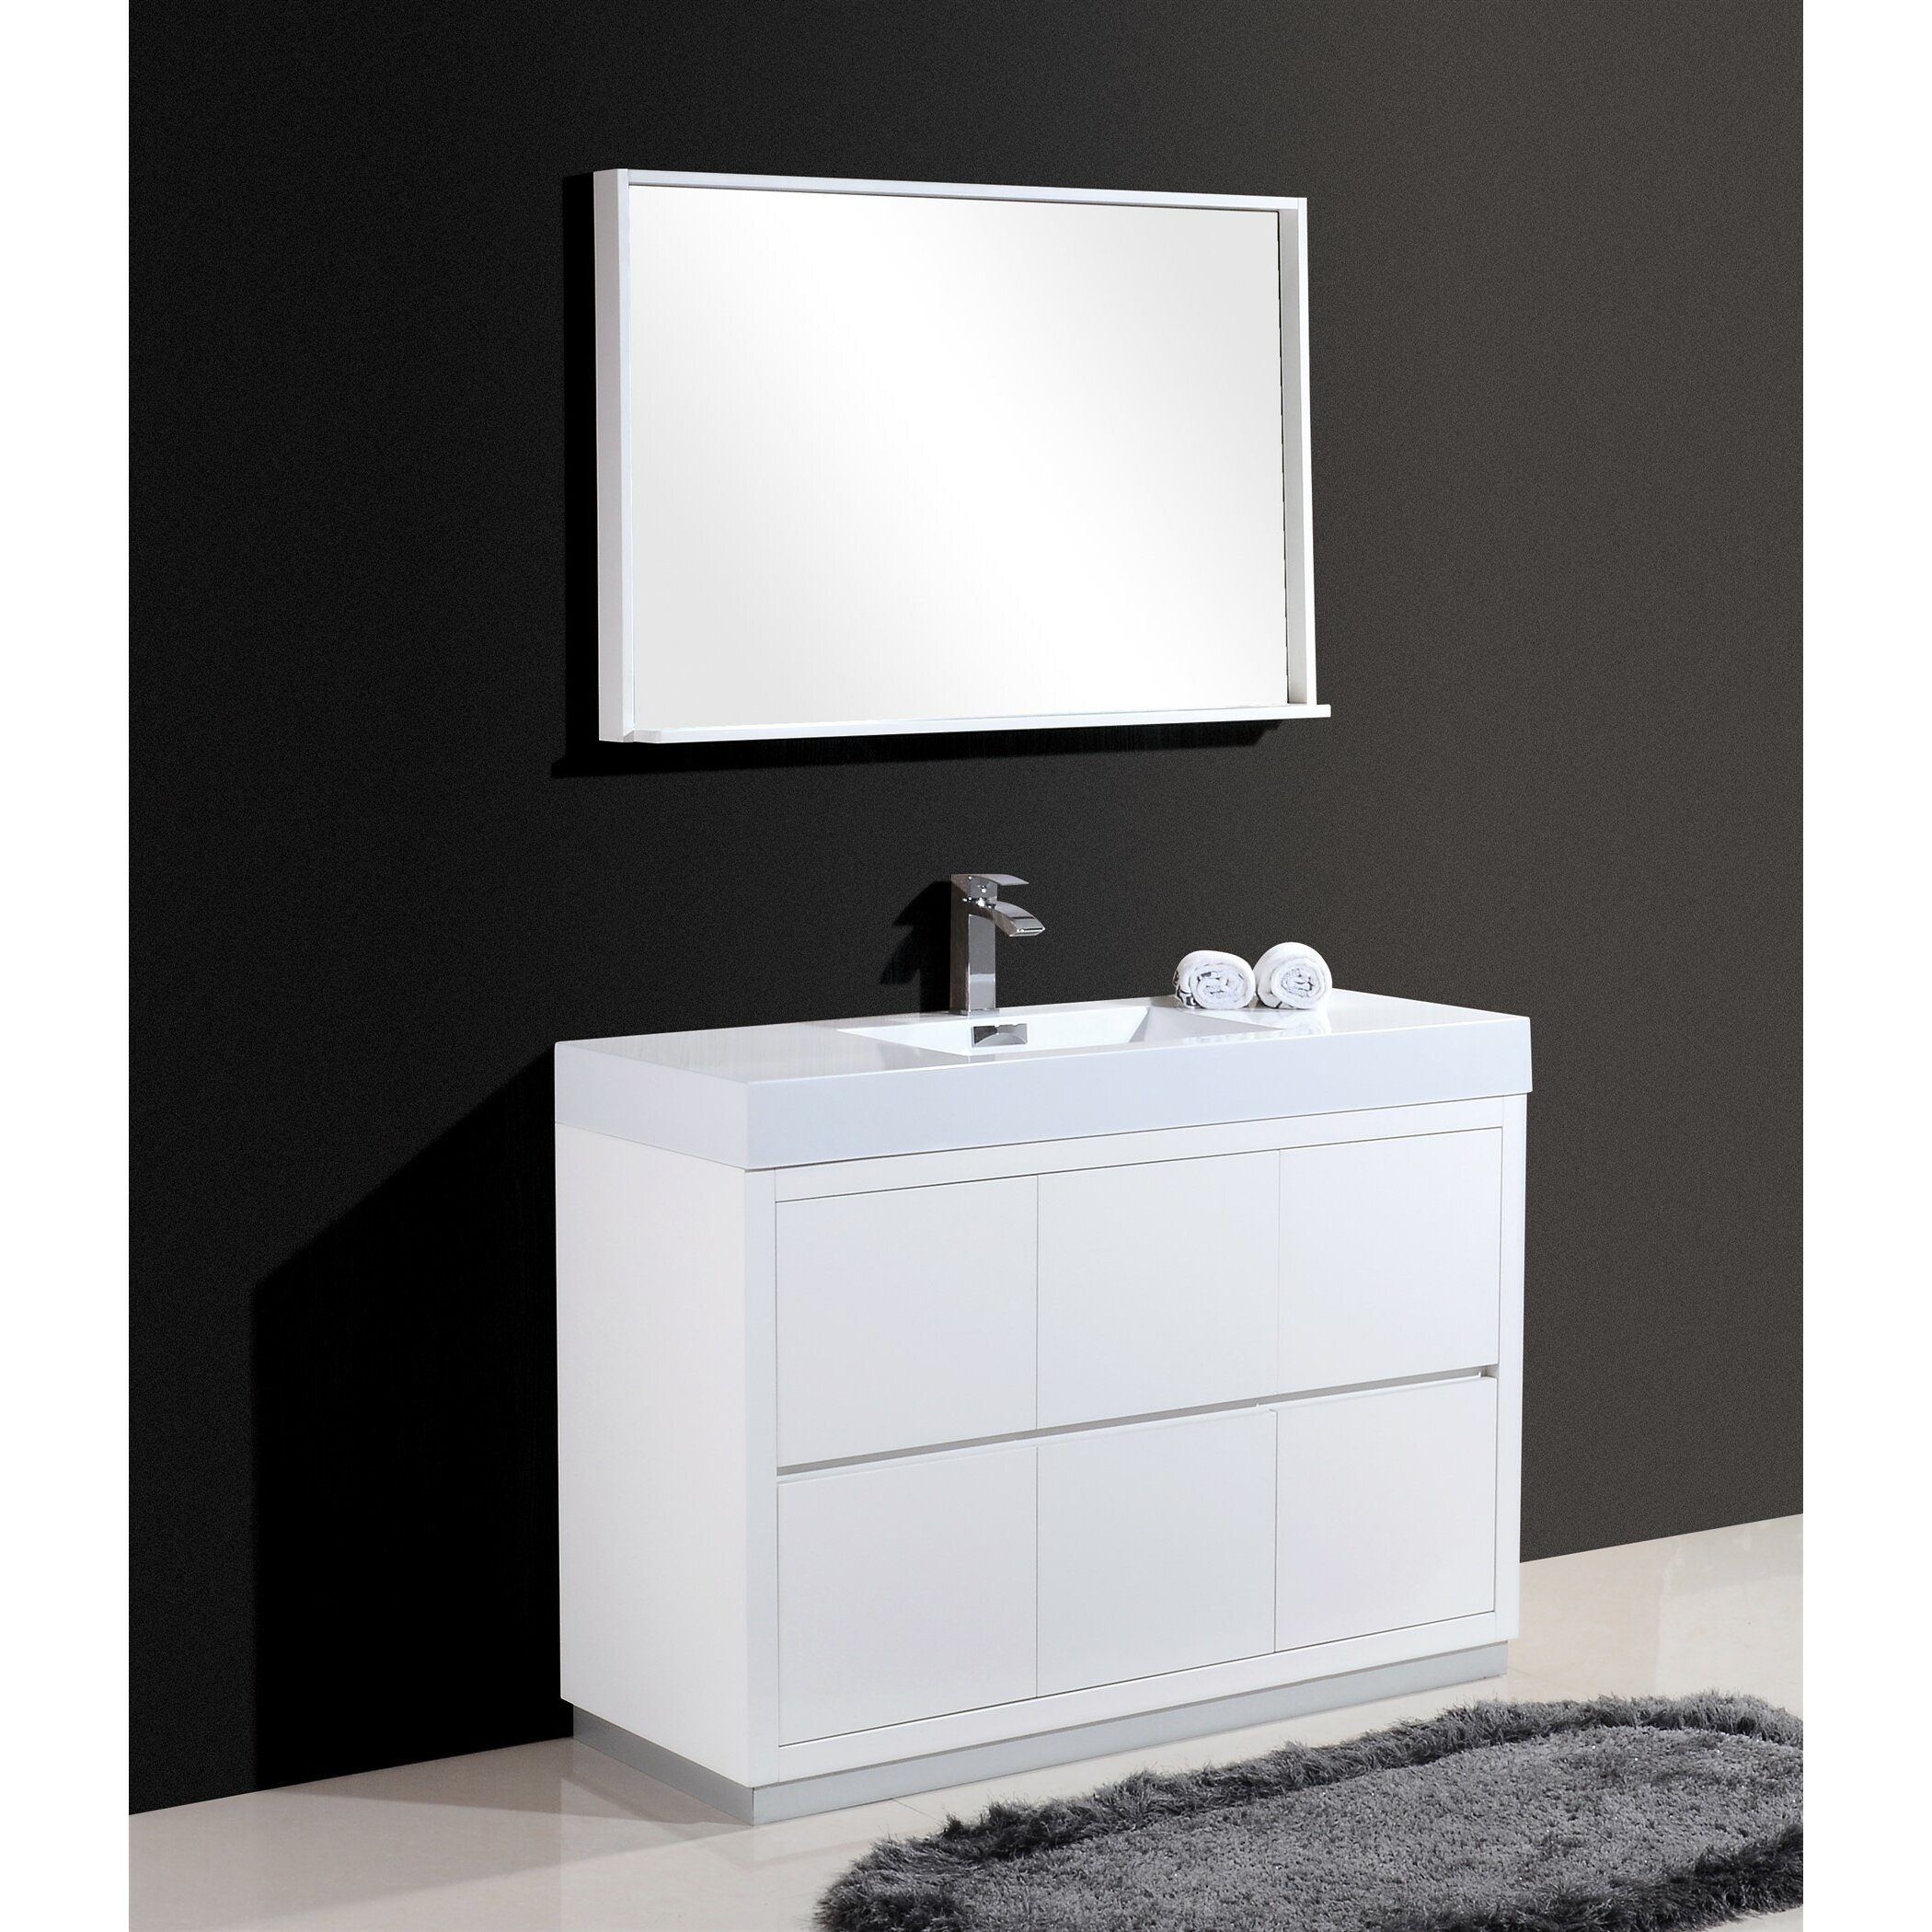 Kube Bath Bliss 48 Single Free Standing Modern Bathroom Vanity Set Reviews